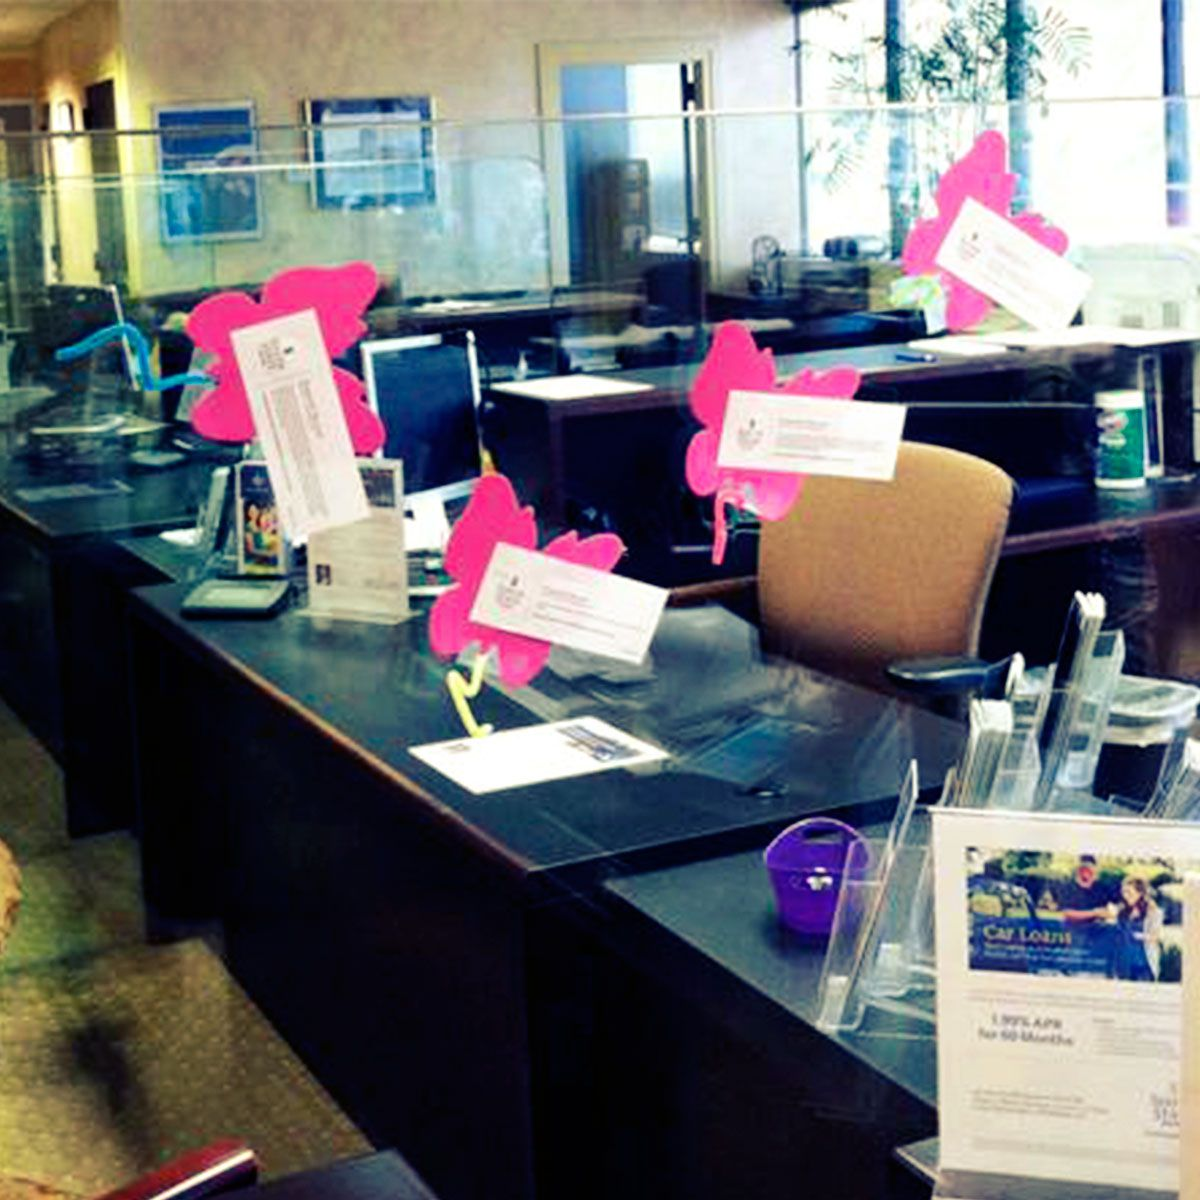 Our branch on Mall Blvd in Savannah, GA decorated their desks and lobby for Financial Literacy Month.